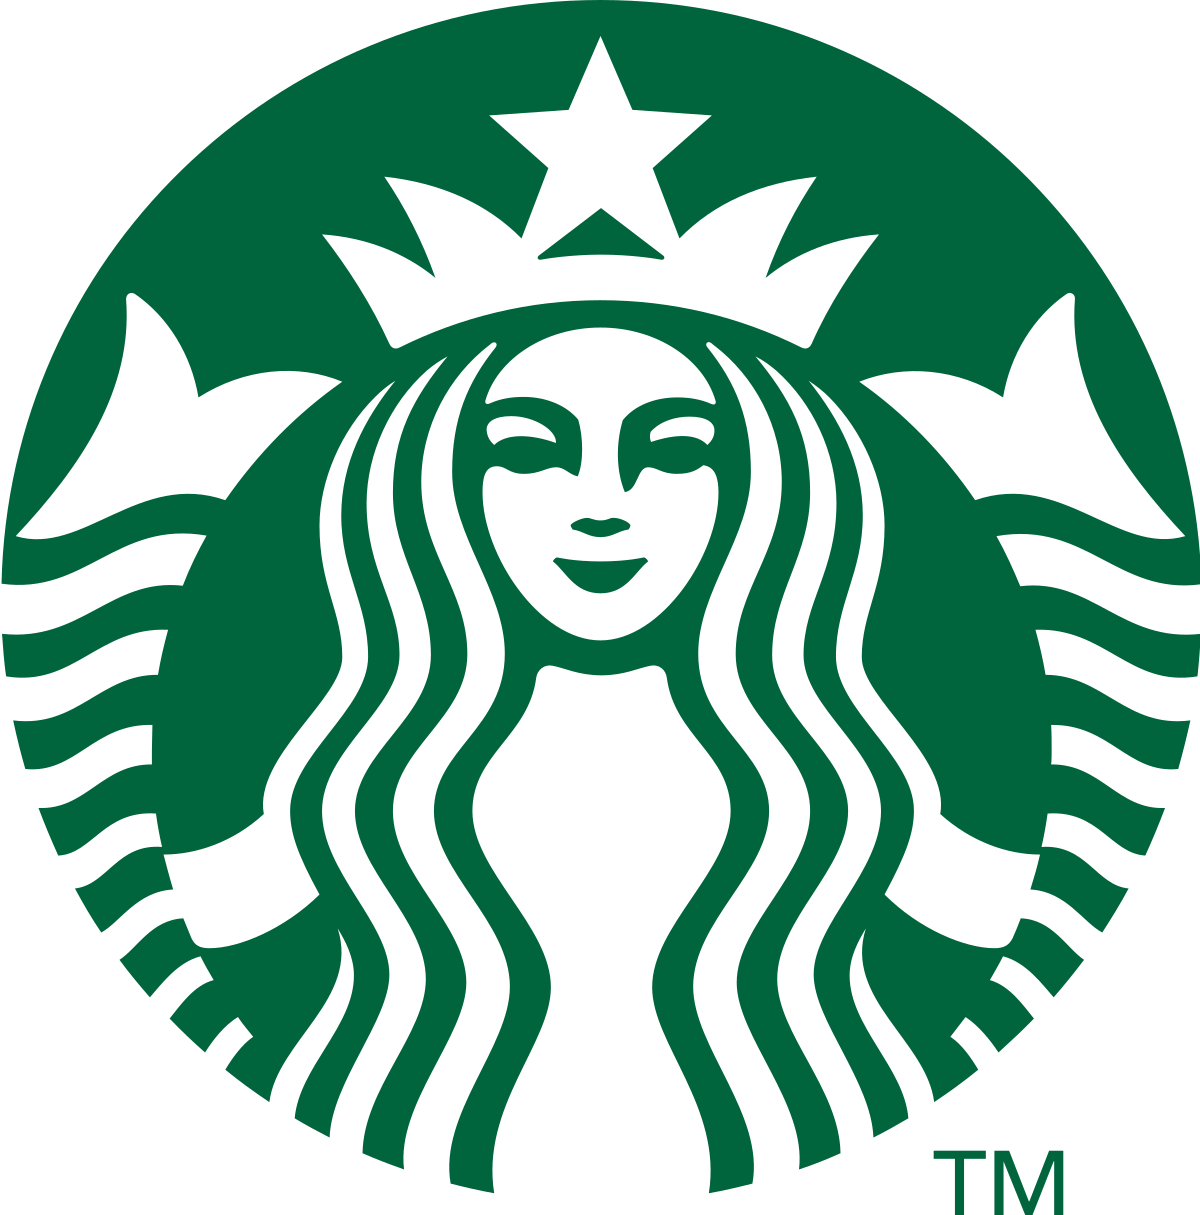 Logo for The Cutwater - Starbucks